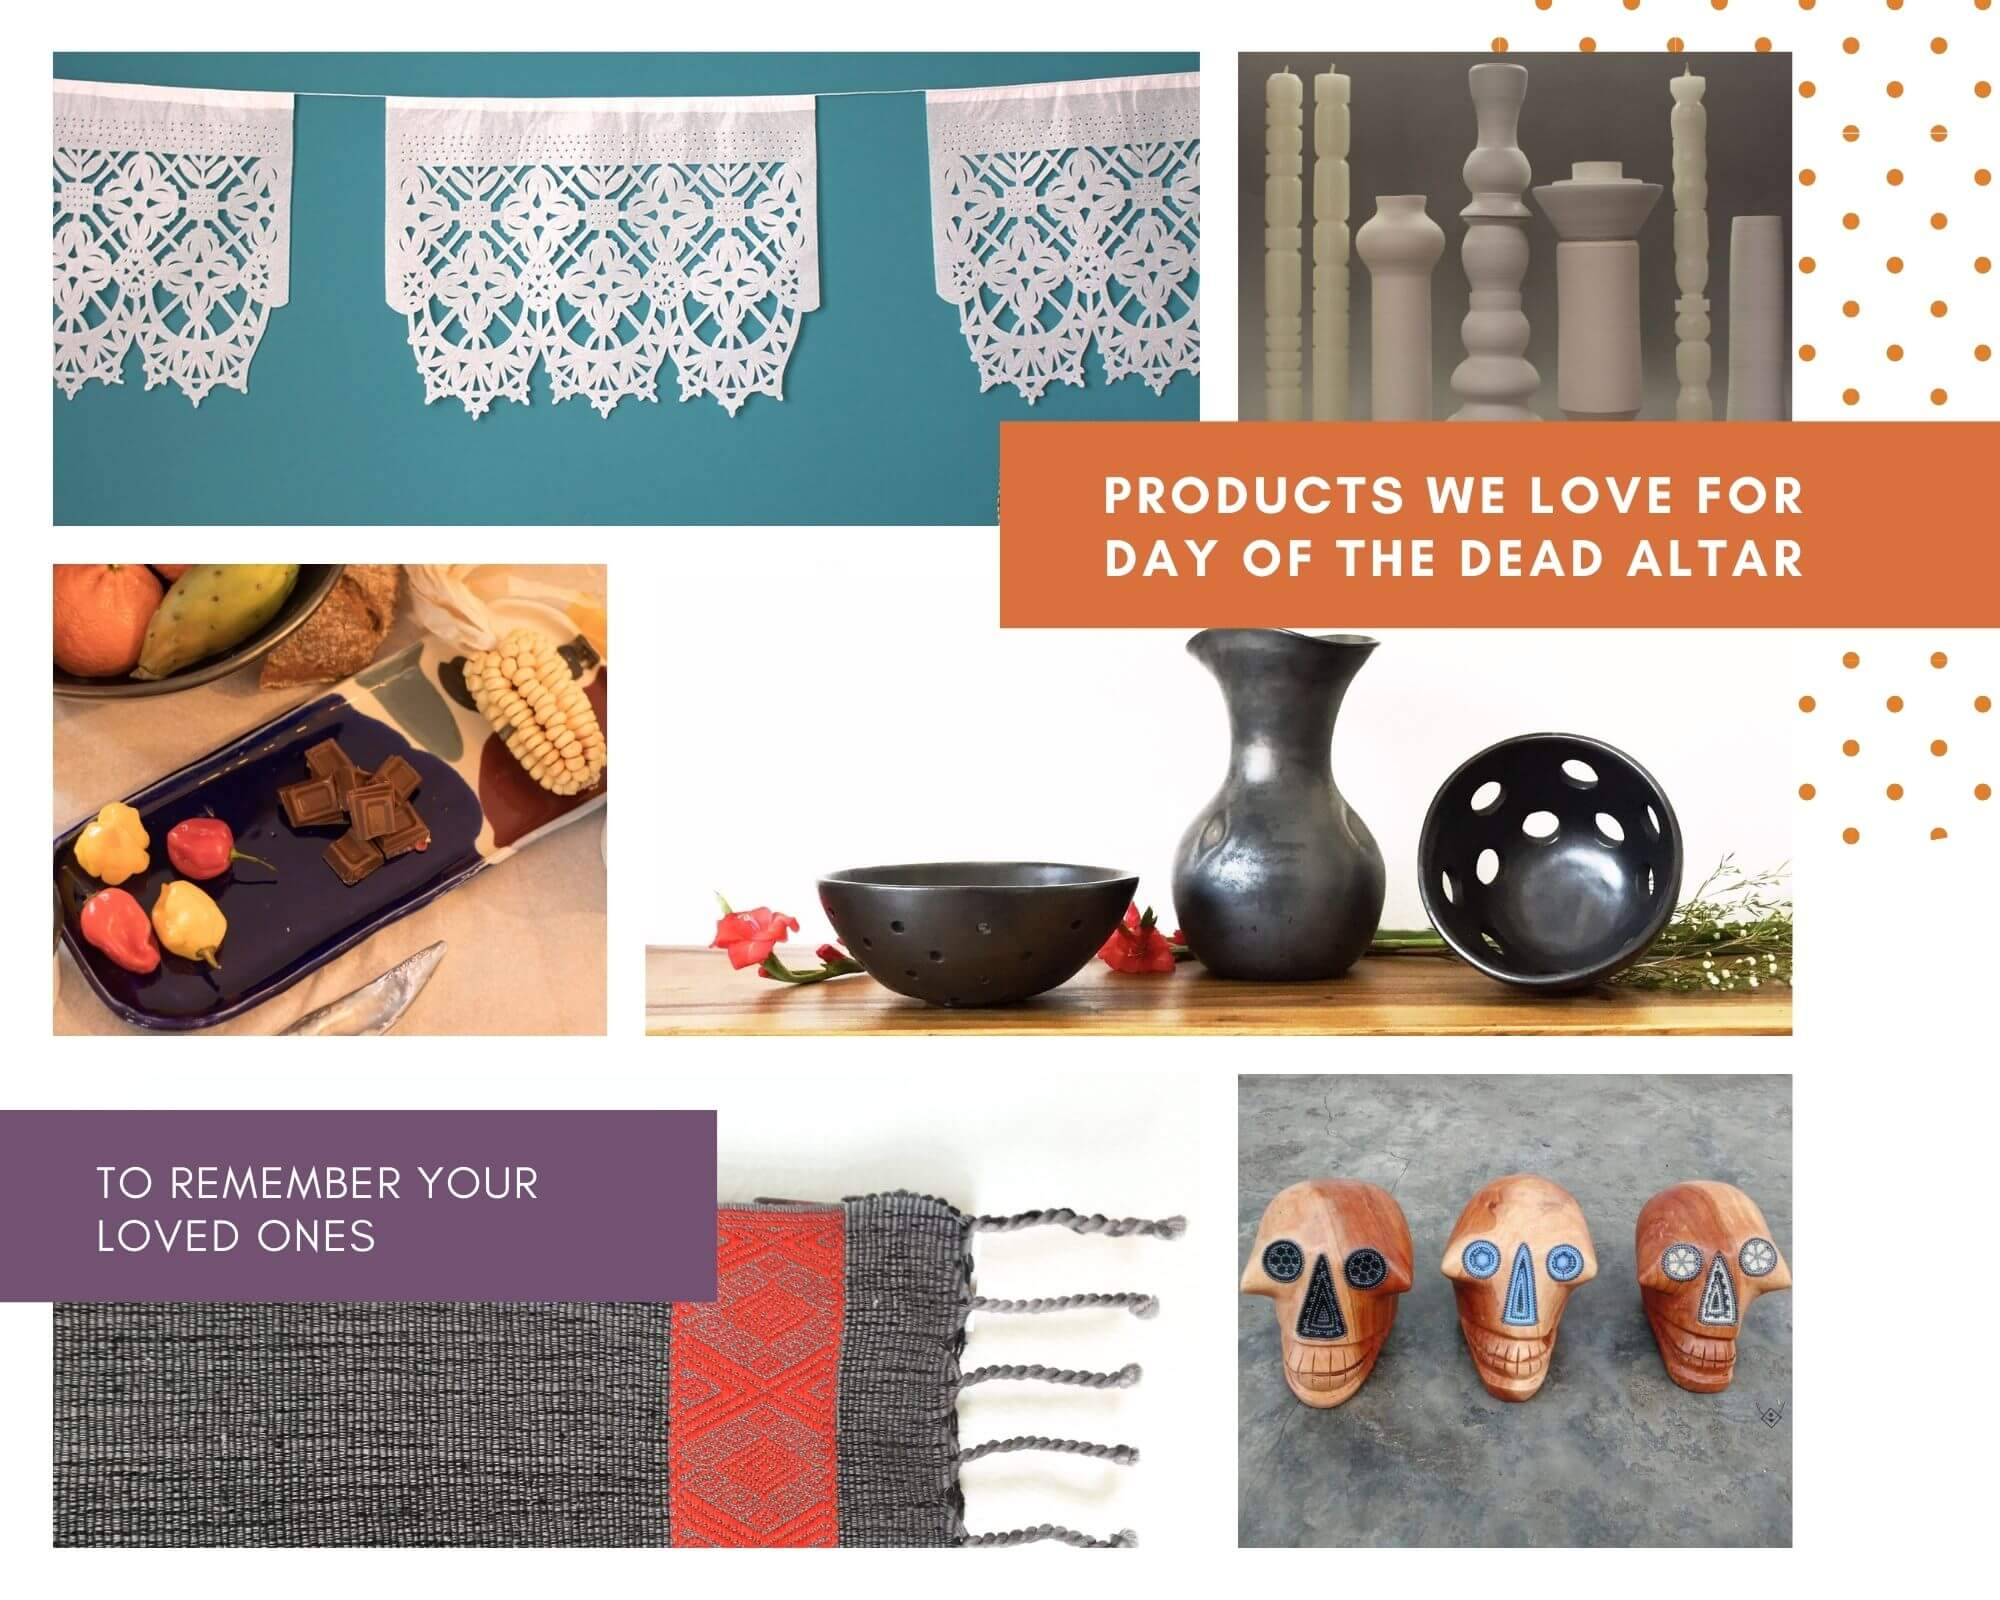 Products for day of the day altar